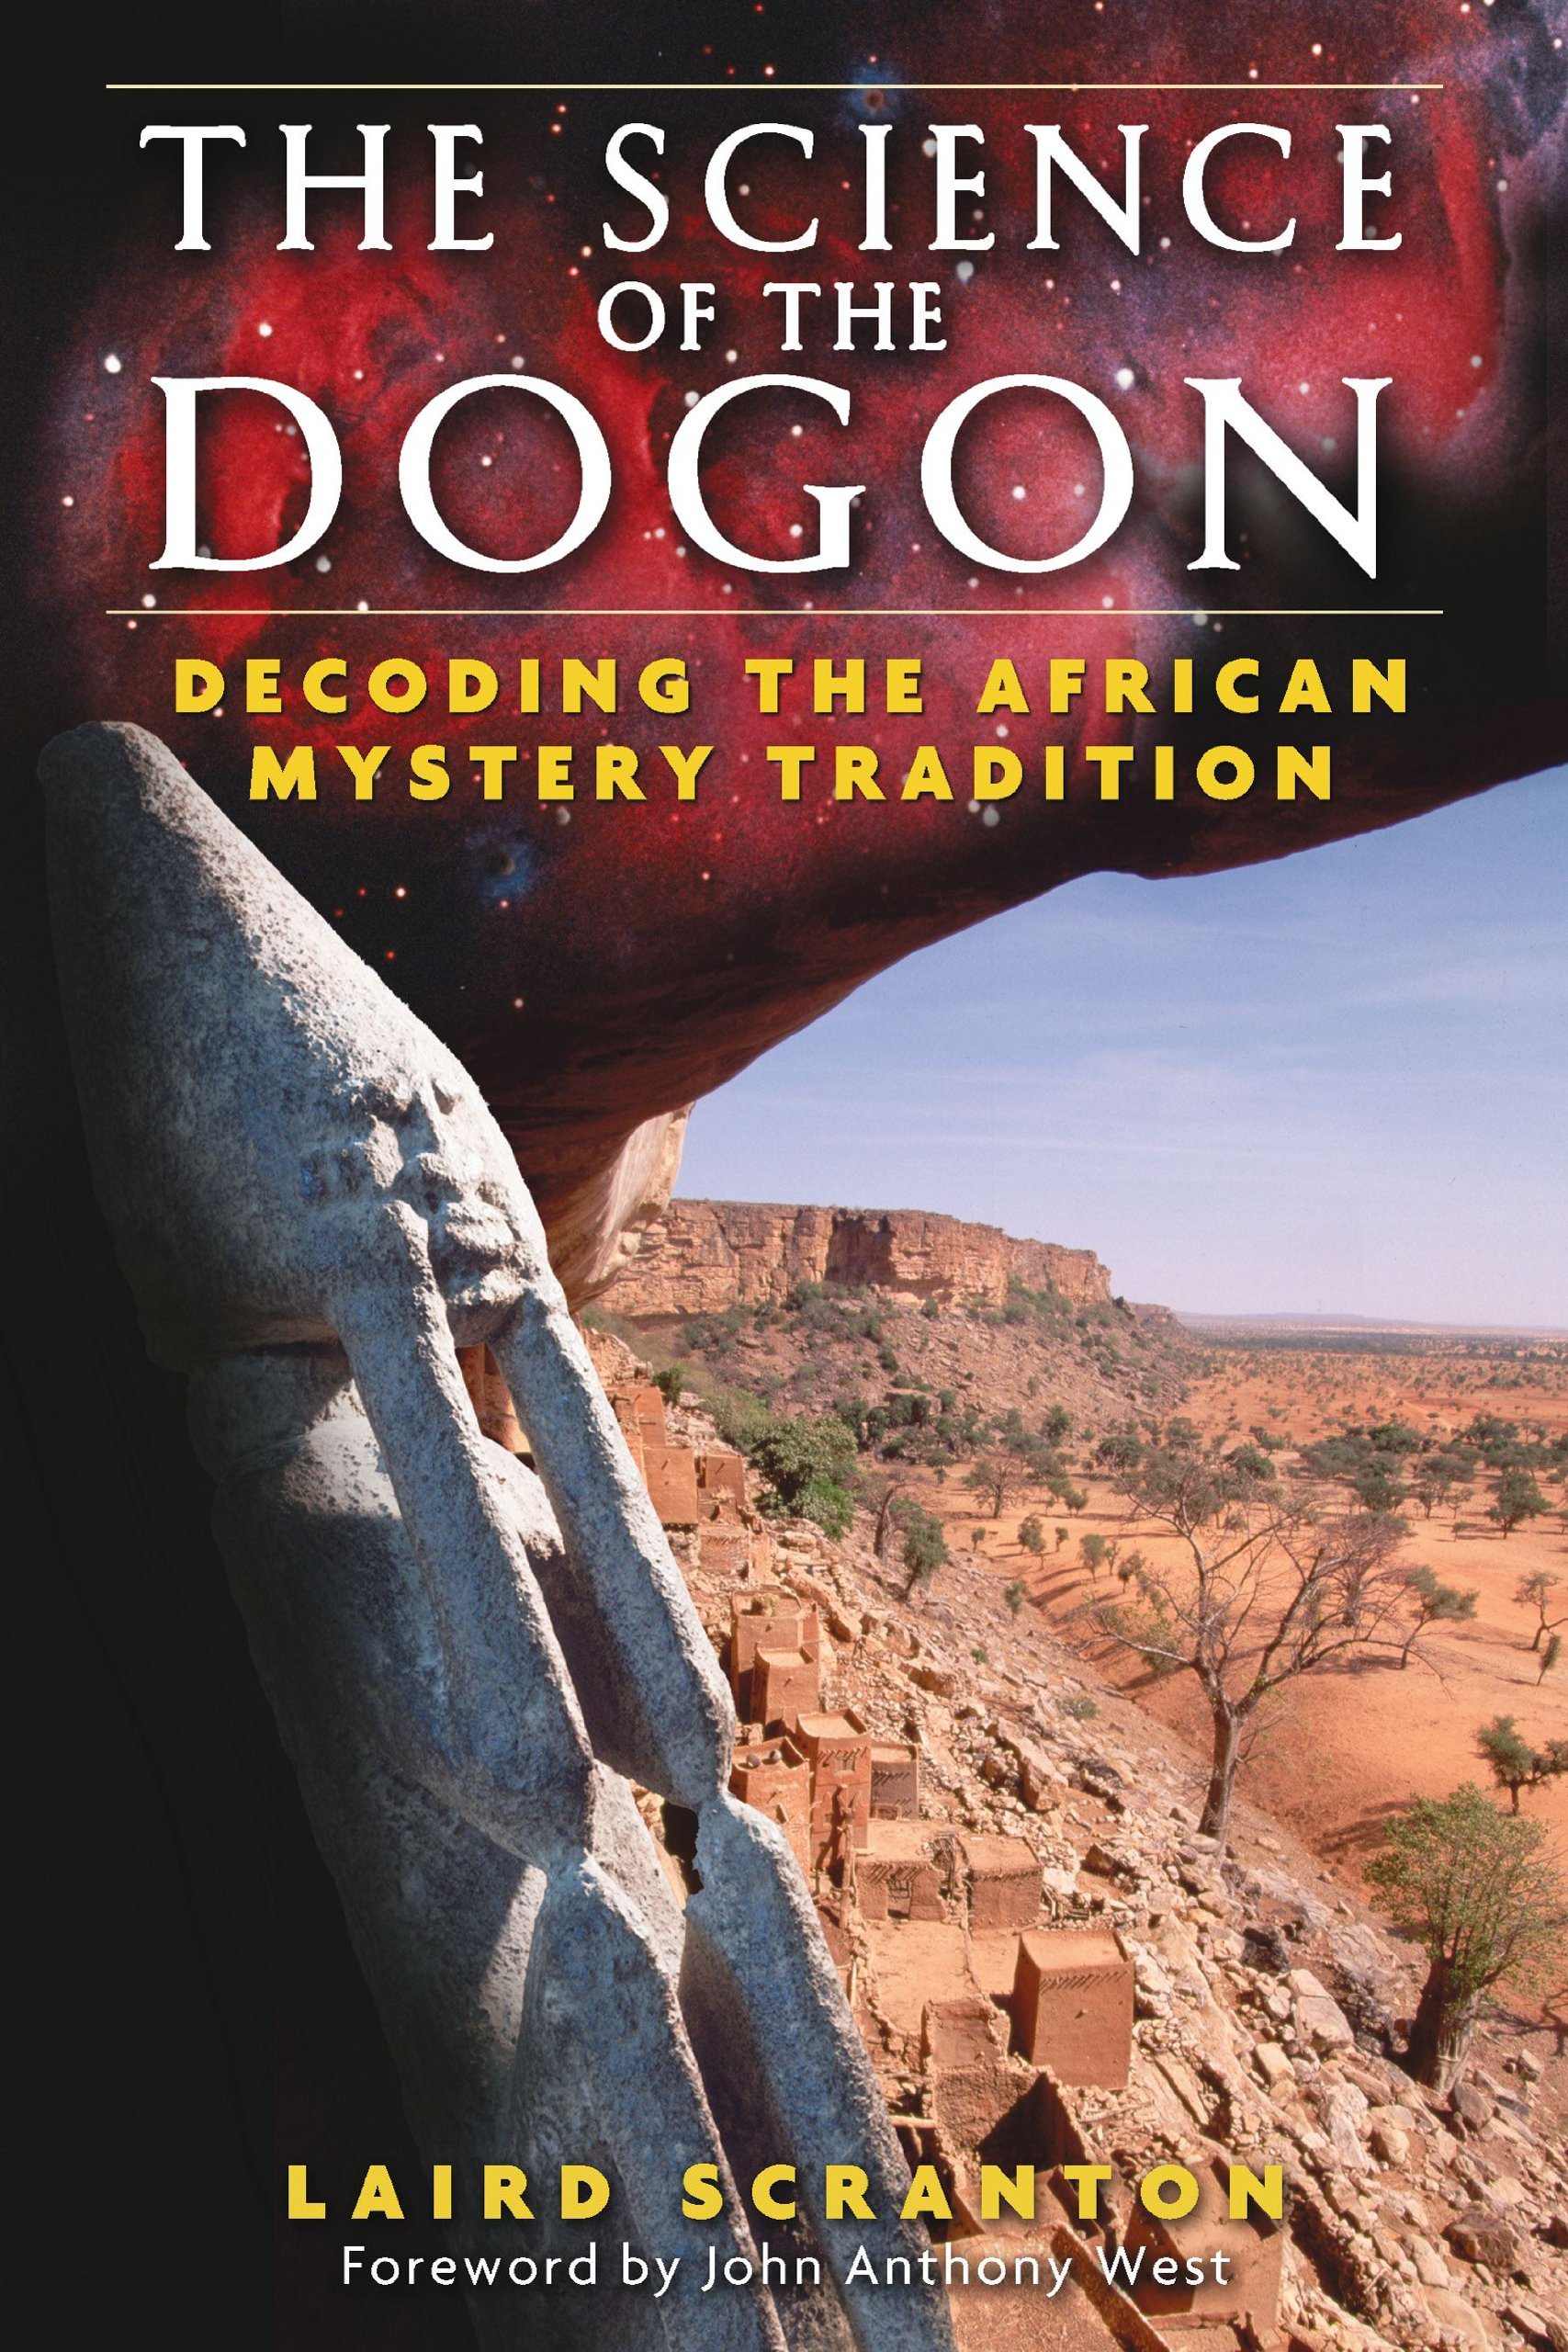 The science of the dogon decoding the african mystery tradition the science of the dogon decoding the african mystery tradition laird scranton john anthony west 9781594771330 amazon books biocorpaavc